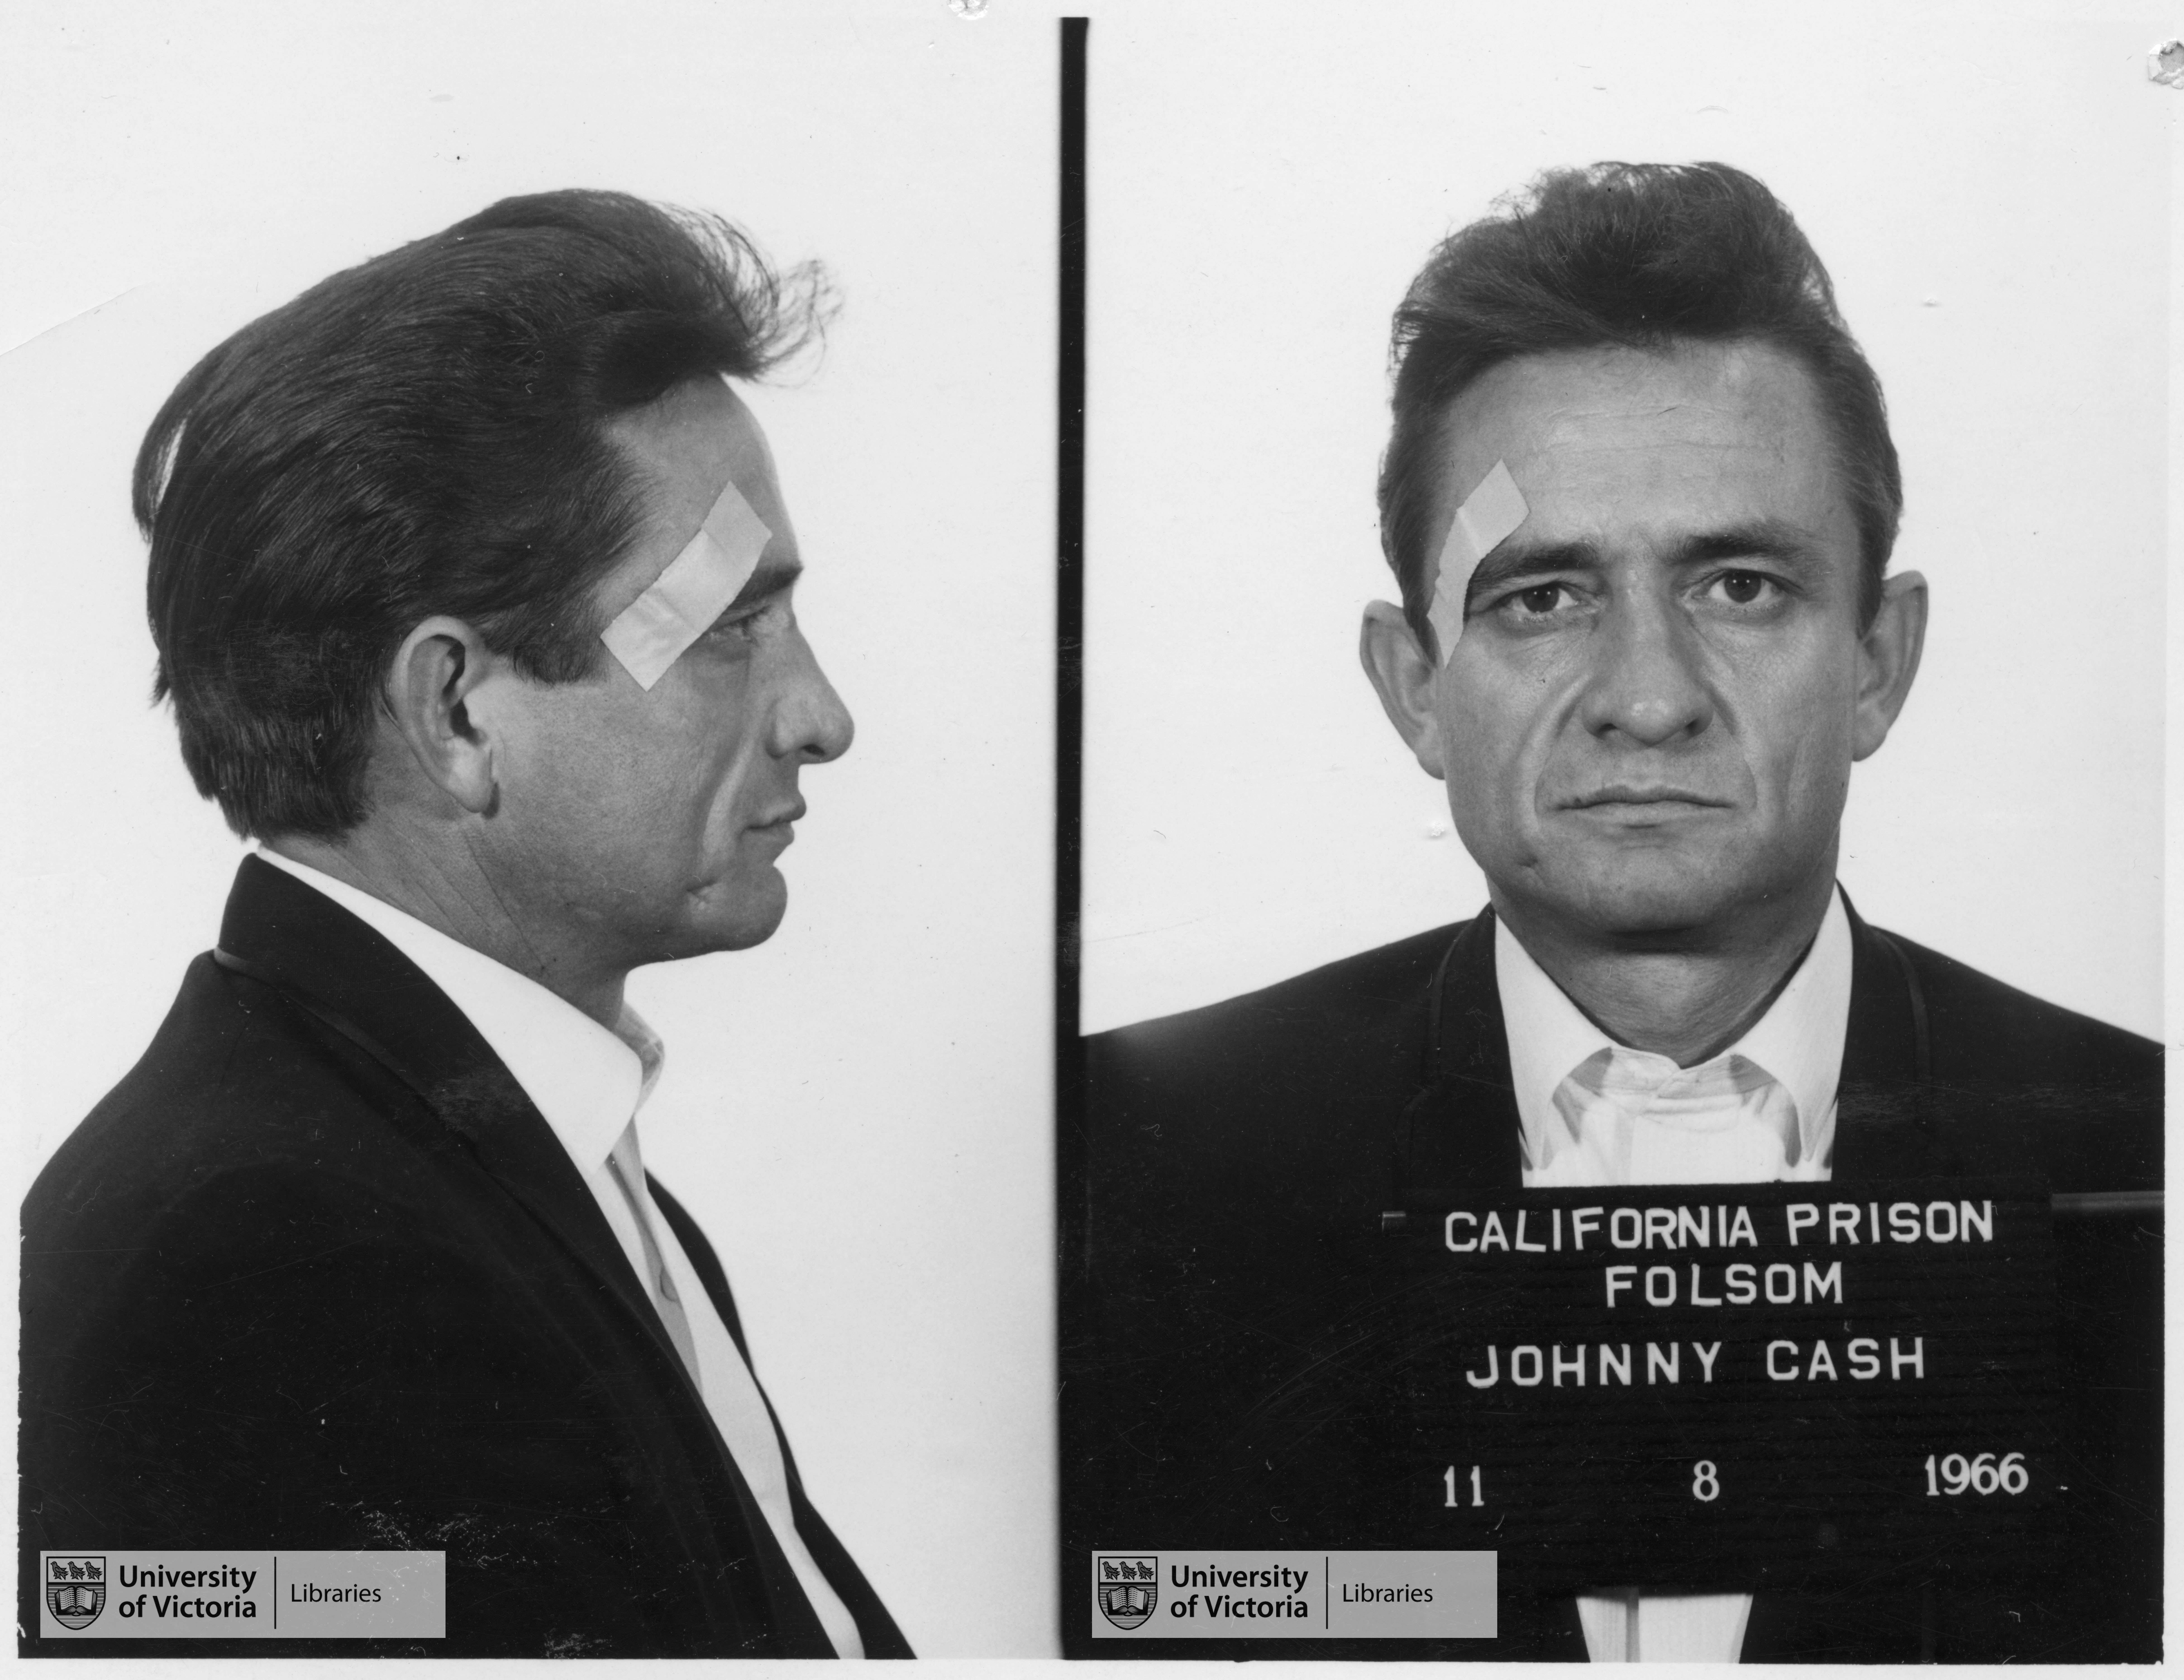 Cash 4 Nc >> Mugshot of Johnny Cash taken at Folsom Prison in 1966, the first time he performed there ...